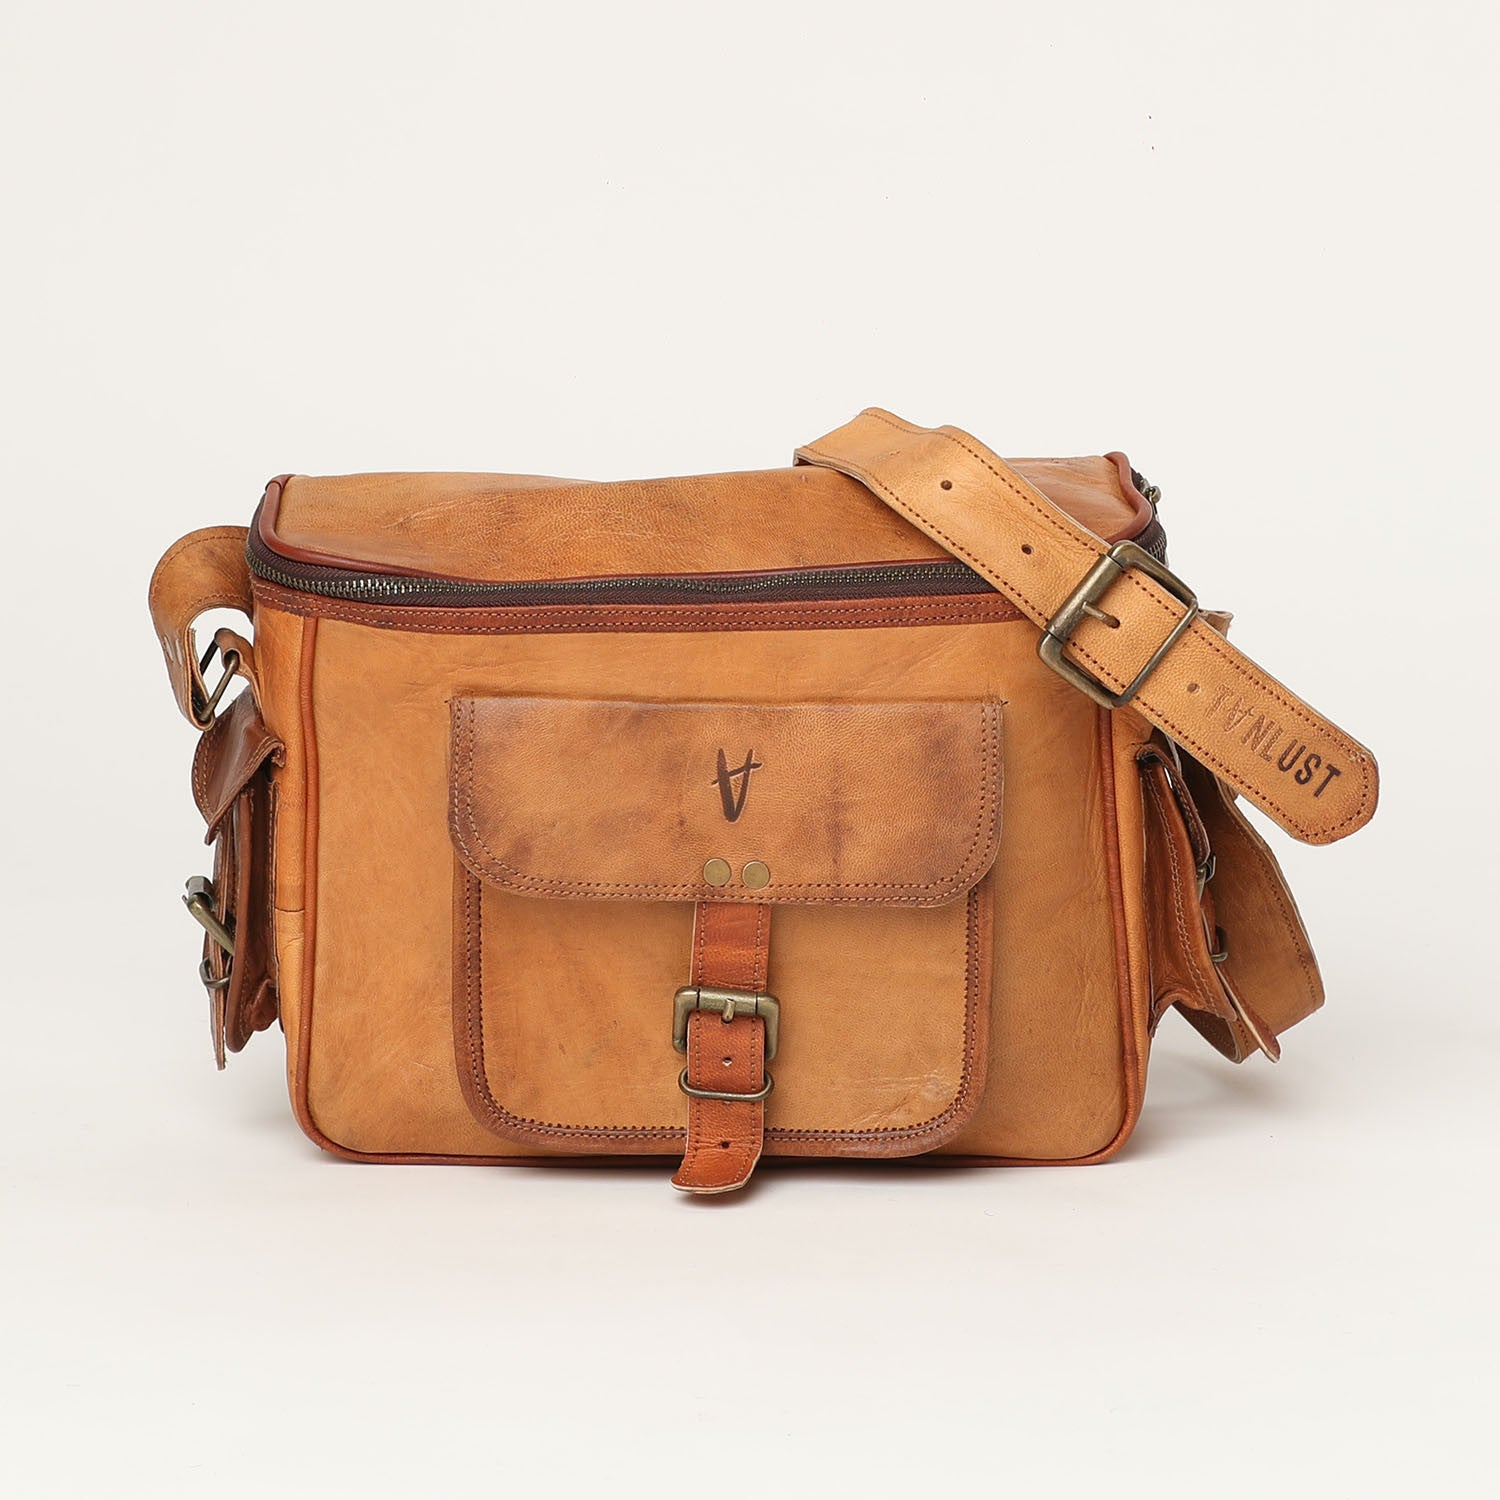 Camera bag - leather bags